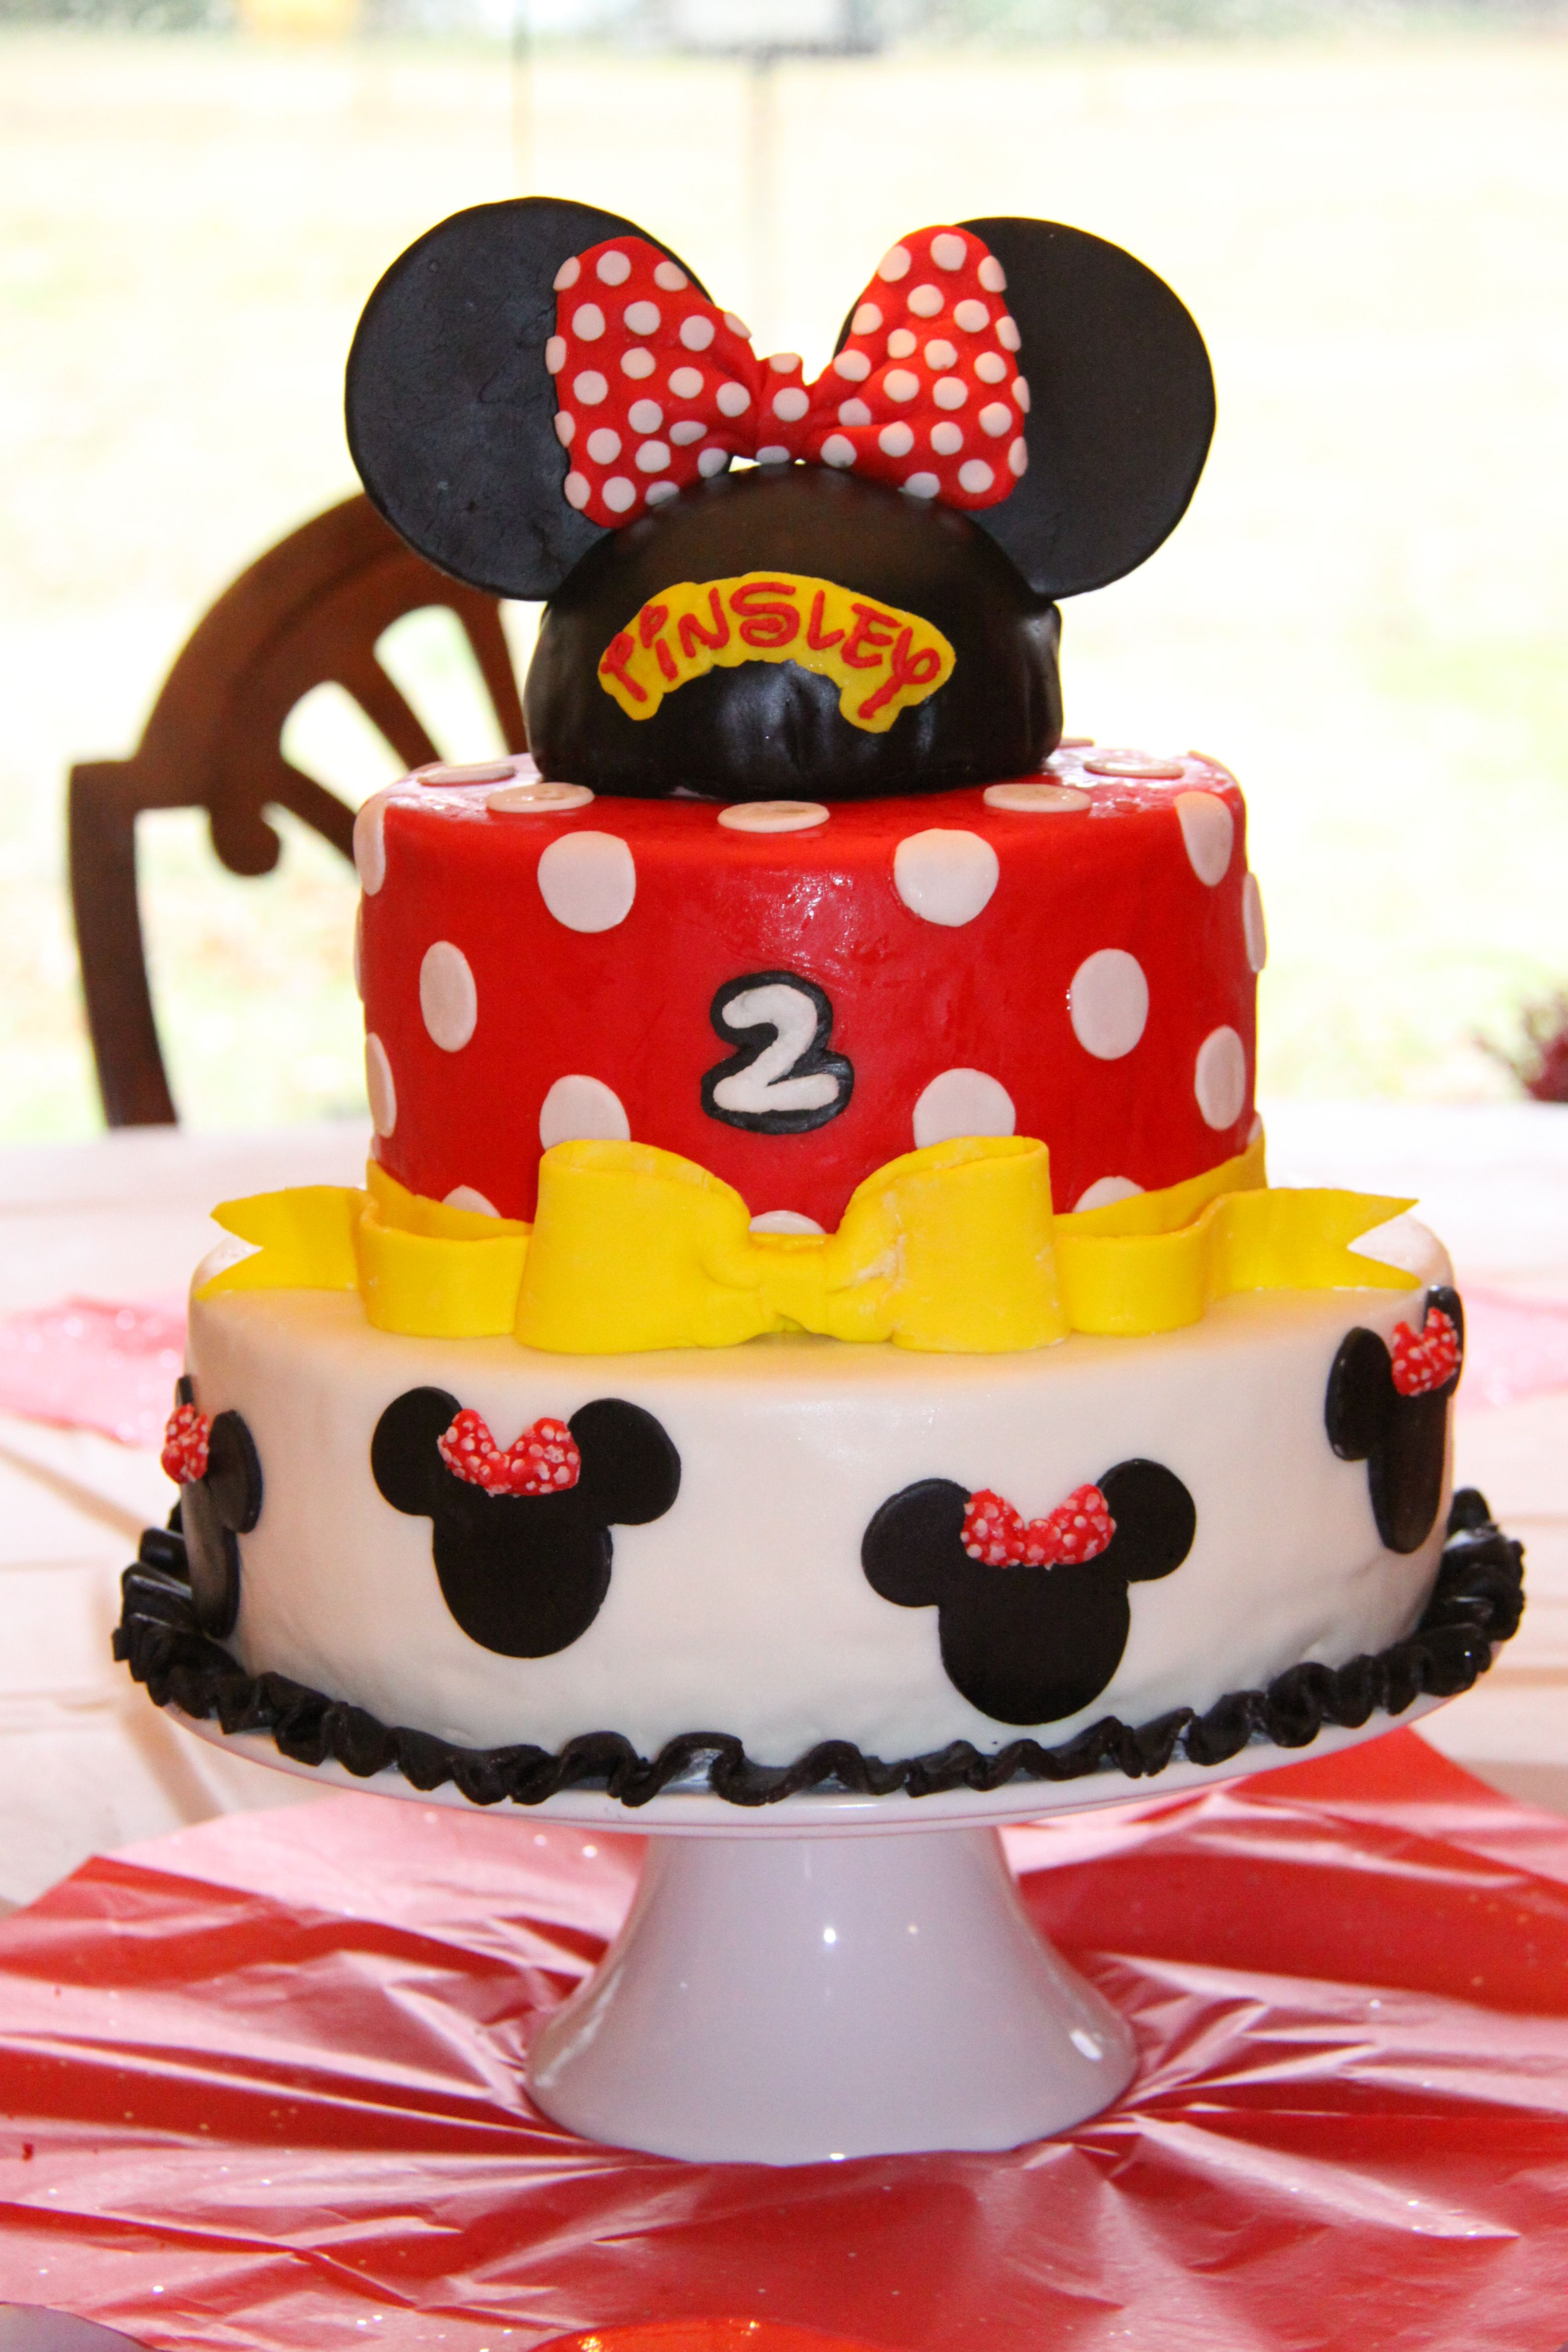 Tinsley's Minnie Mouse Birthday Cake 02/2013 - 12